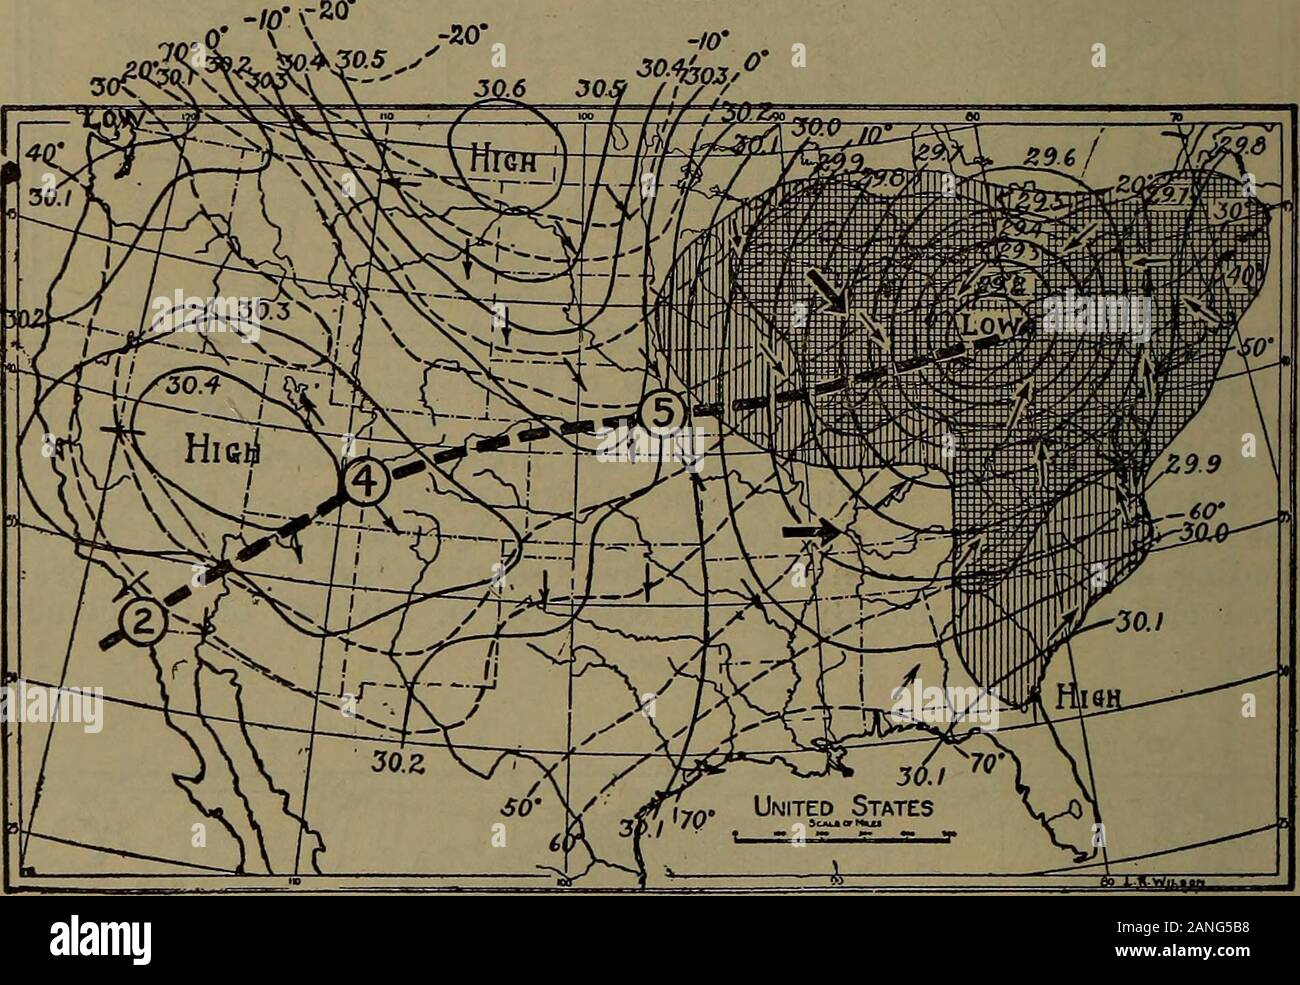 united states weather bureau map Science for beginners . Fig. 149.—Weather map of 7 a. m. (Central